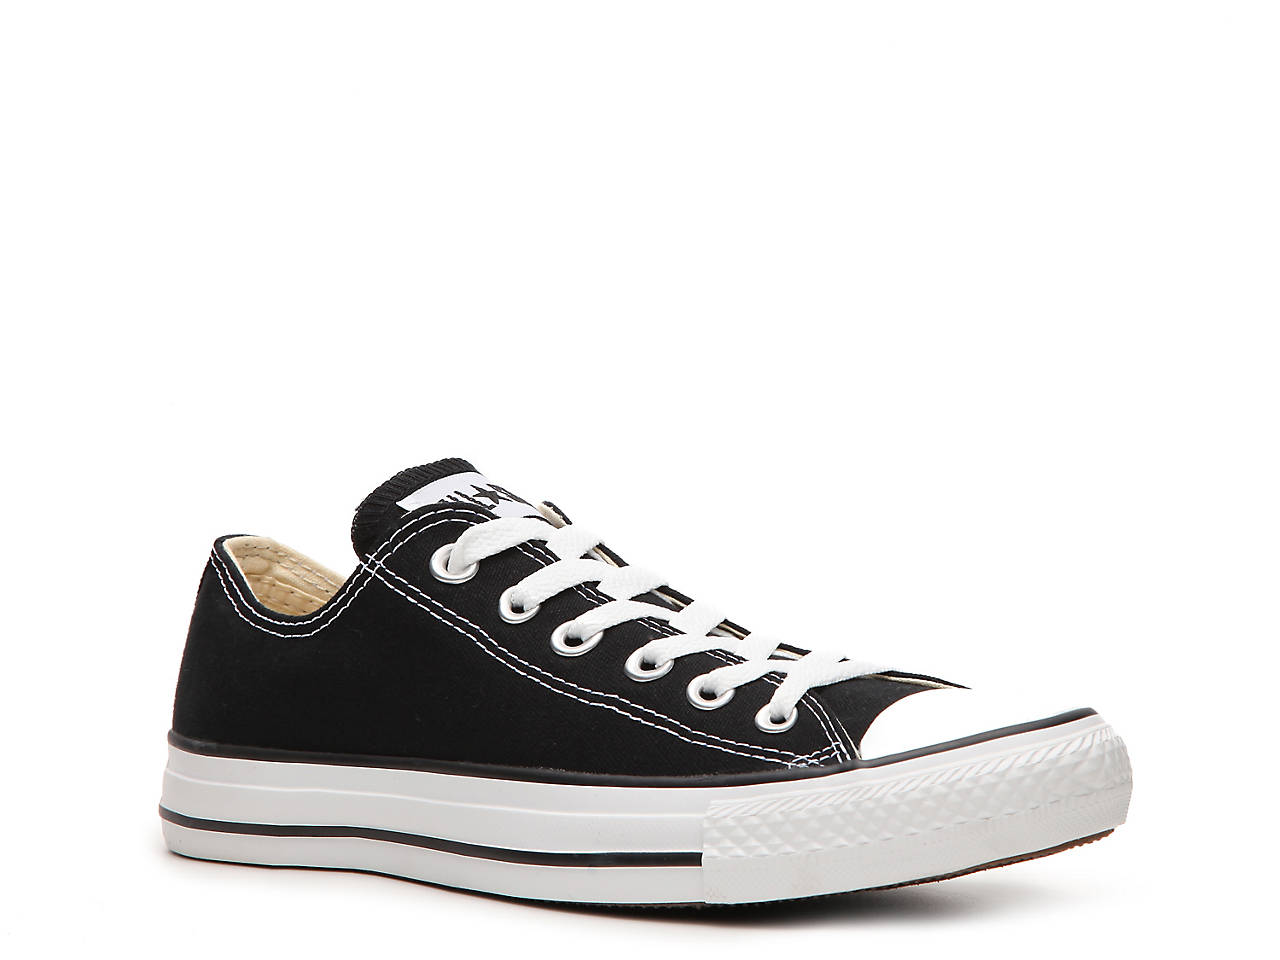 49356718f2b0 Converse Chuck Taylor All Star Sneaker - Women s Women s Shoes